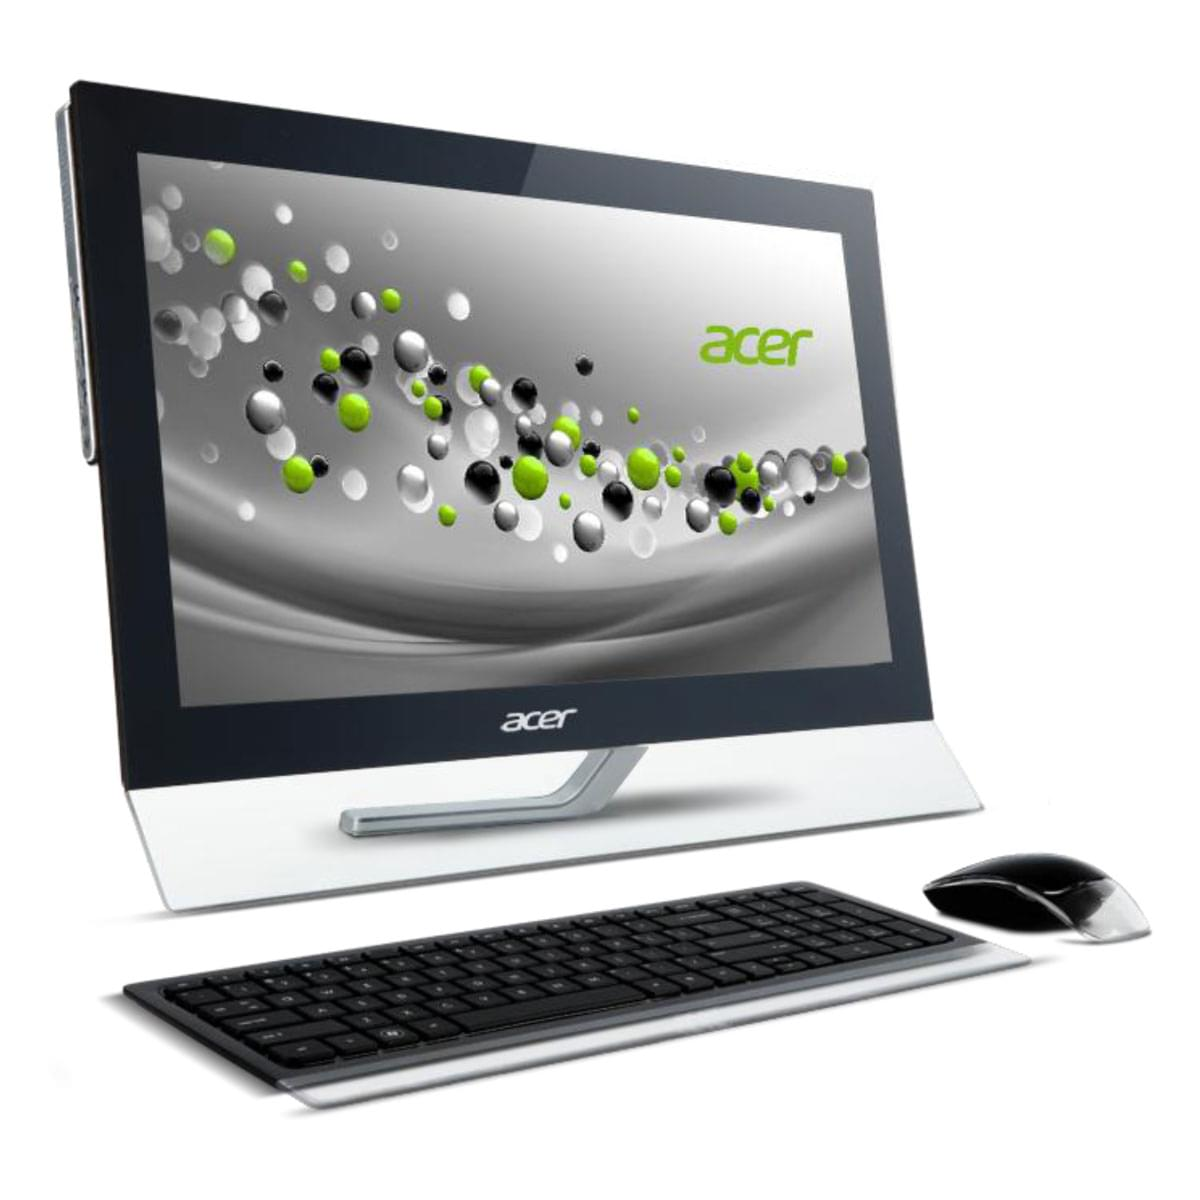 Acer Aspire A5600U-002B (DQ.SMKEF.002) - Achat / Vente All-In-One PC sur Cybertek.fr - 0